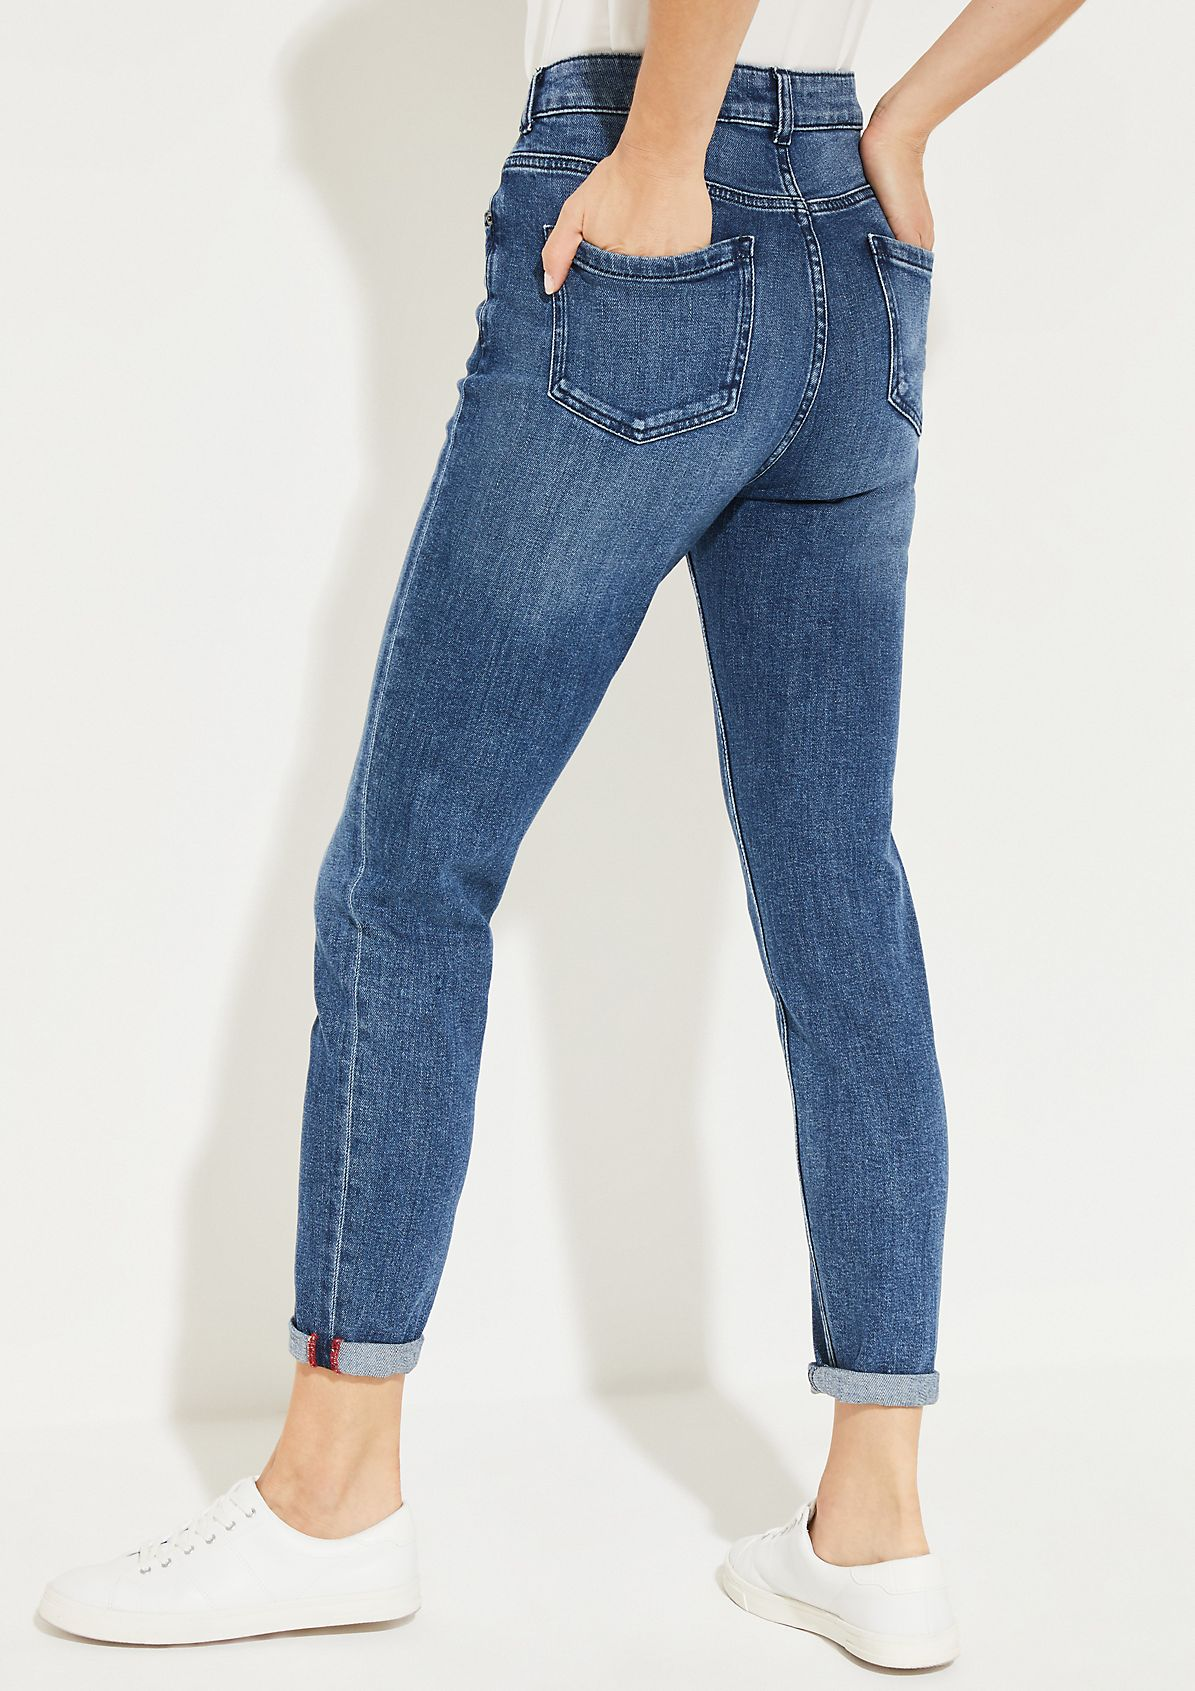 Lässige Jeans in Used-Waschung